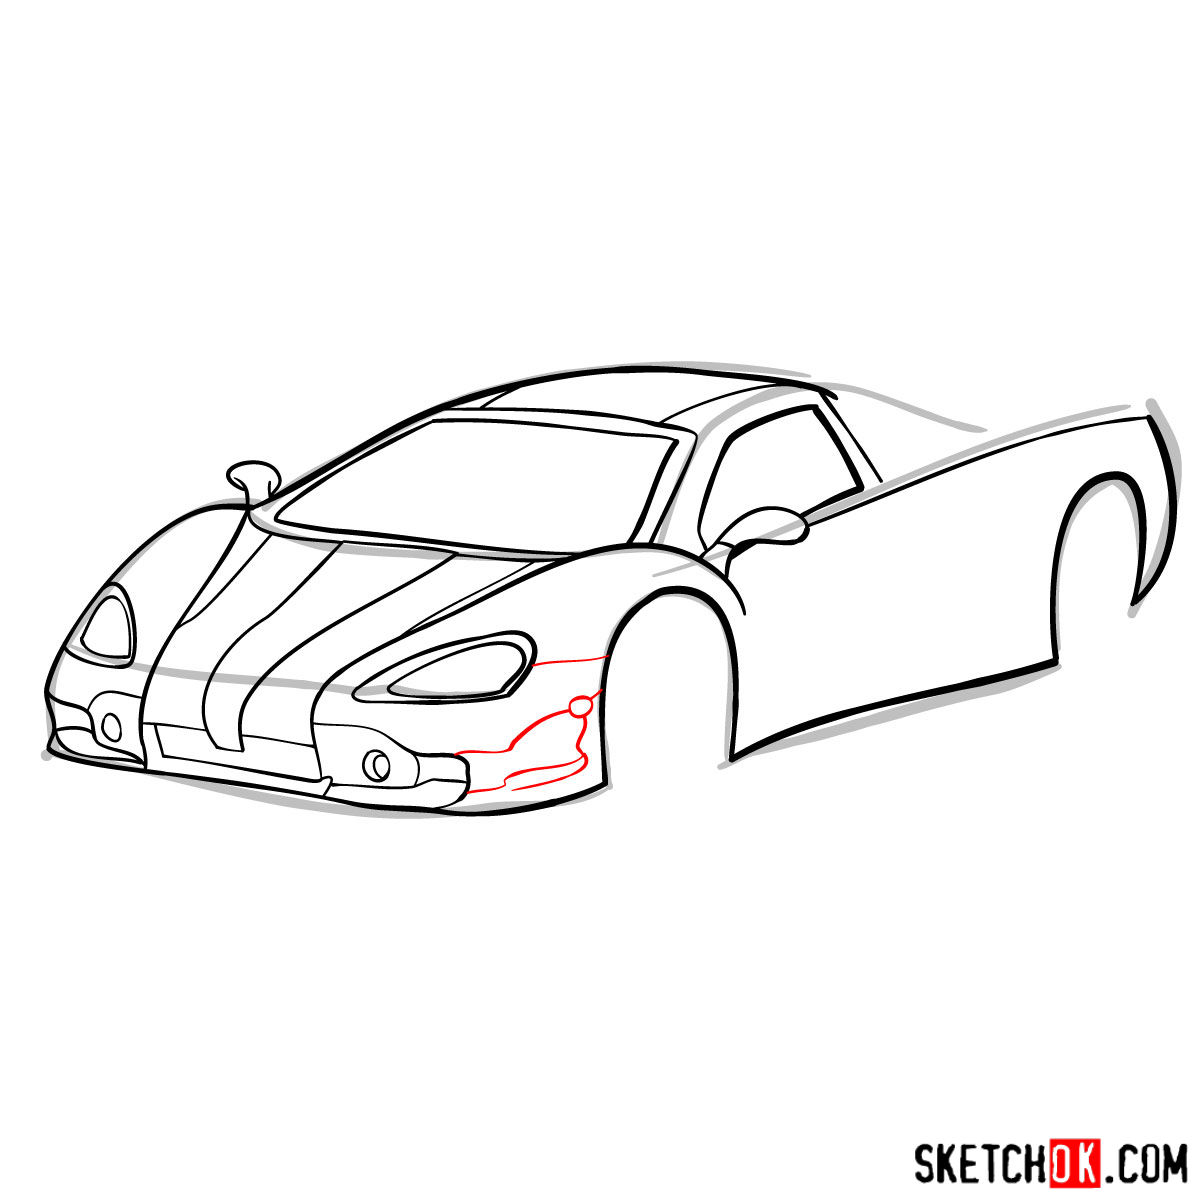 How to draw SSC Ultimate Aero TT 2006 - step 07